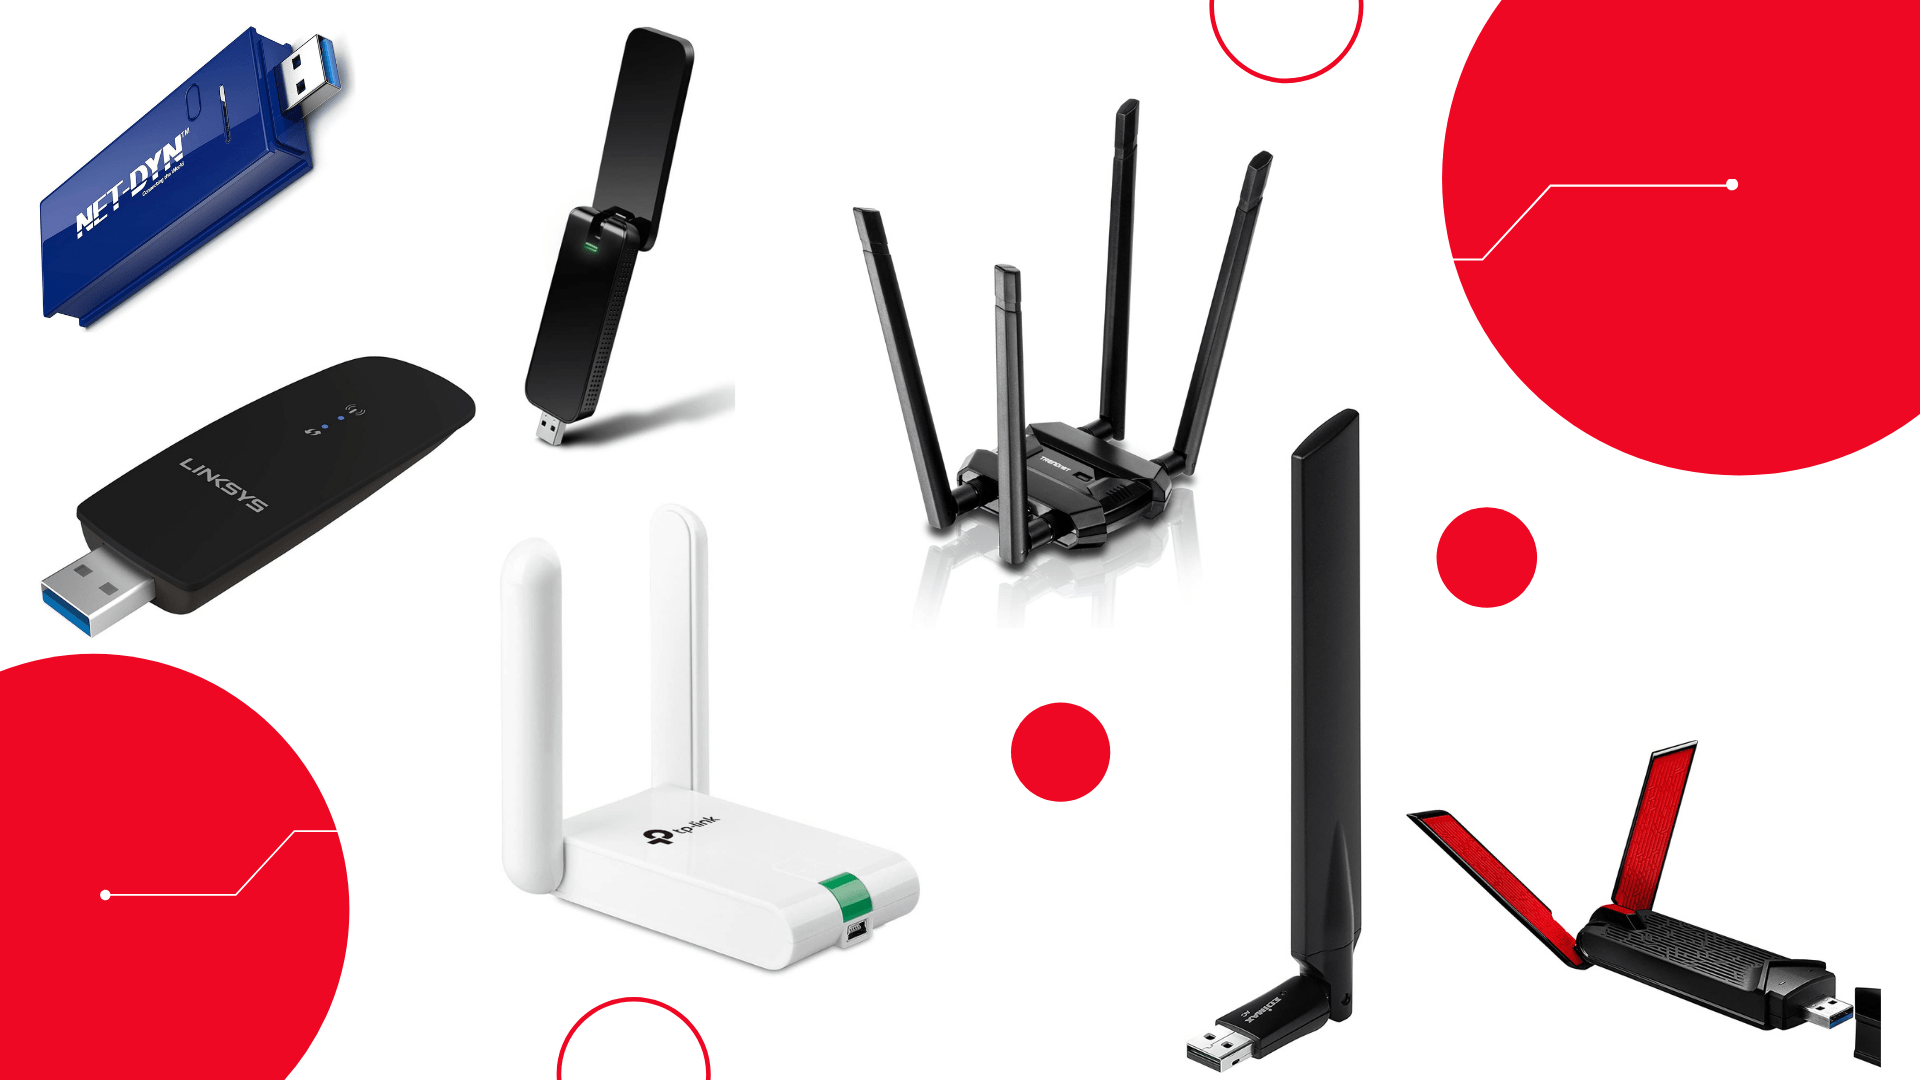 Some of the best USB WiFi adapters out in the market